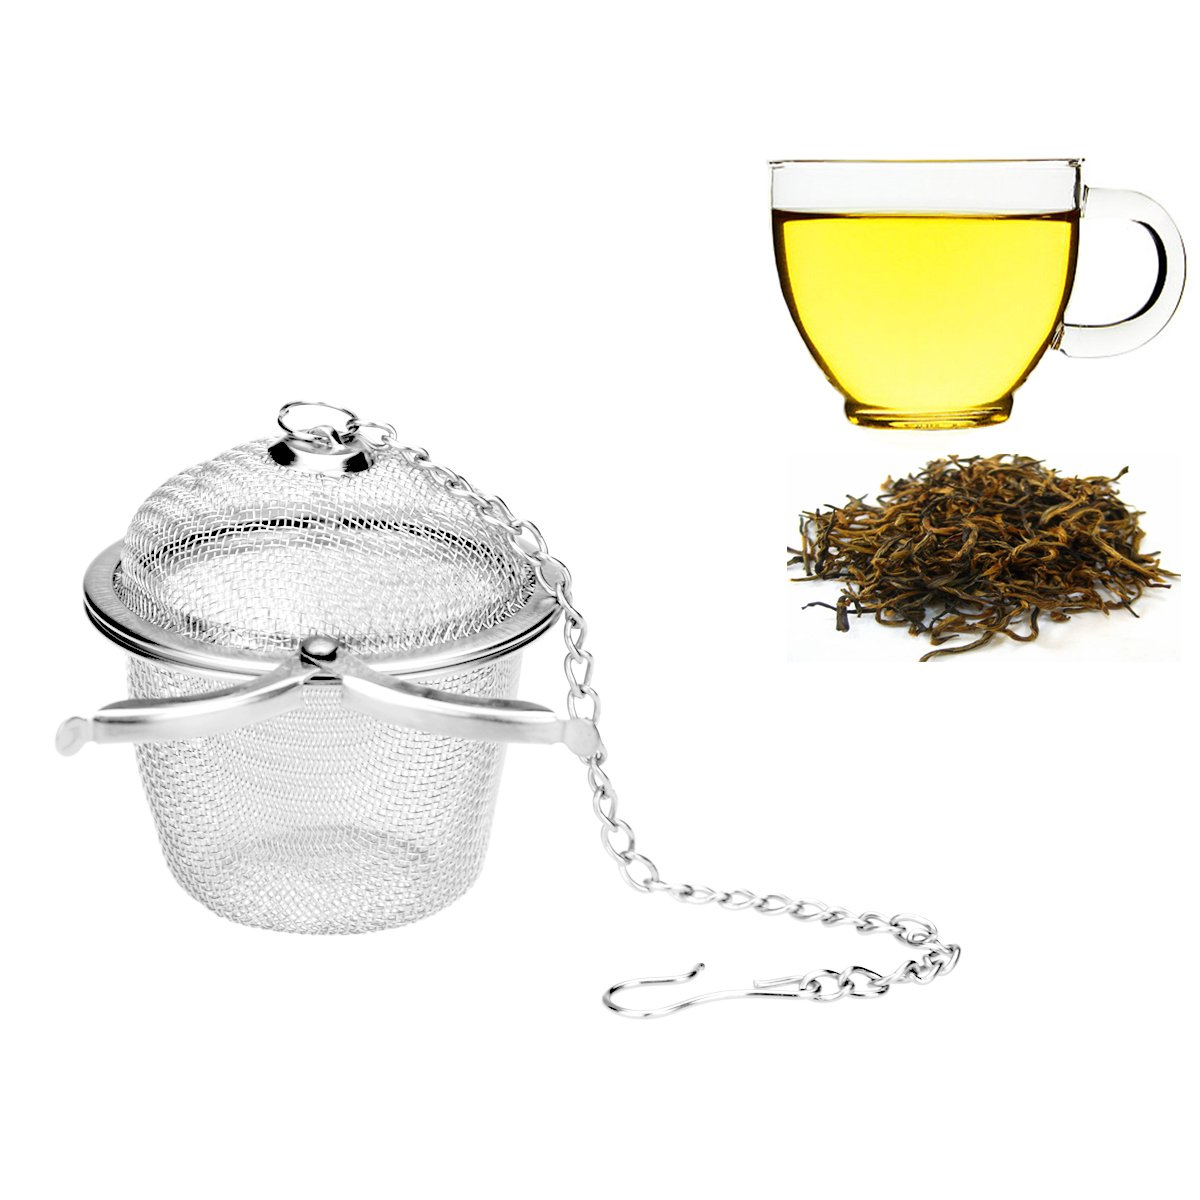 Ilyever Stainless Steel Mesh Tea Bag Strainer filter Infuser for Loose Leaf Grain Tea Cups, Mugs, and Teapots by ilyever (Image #1)